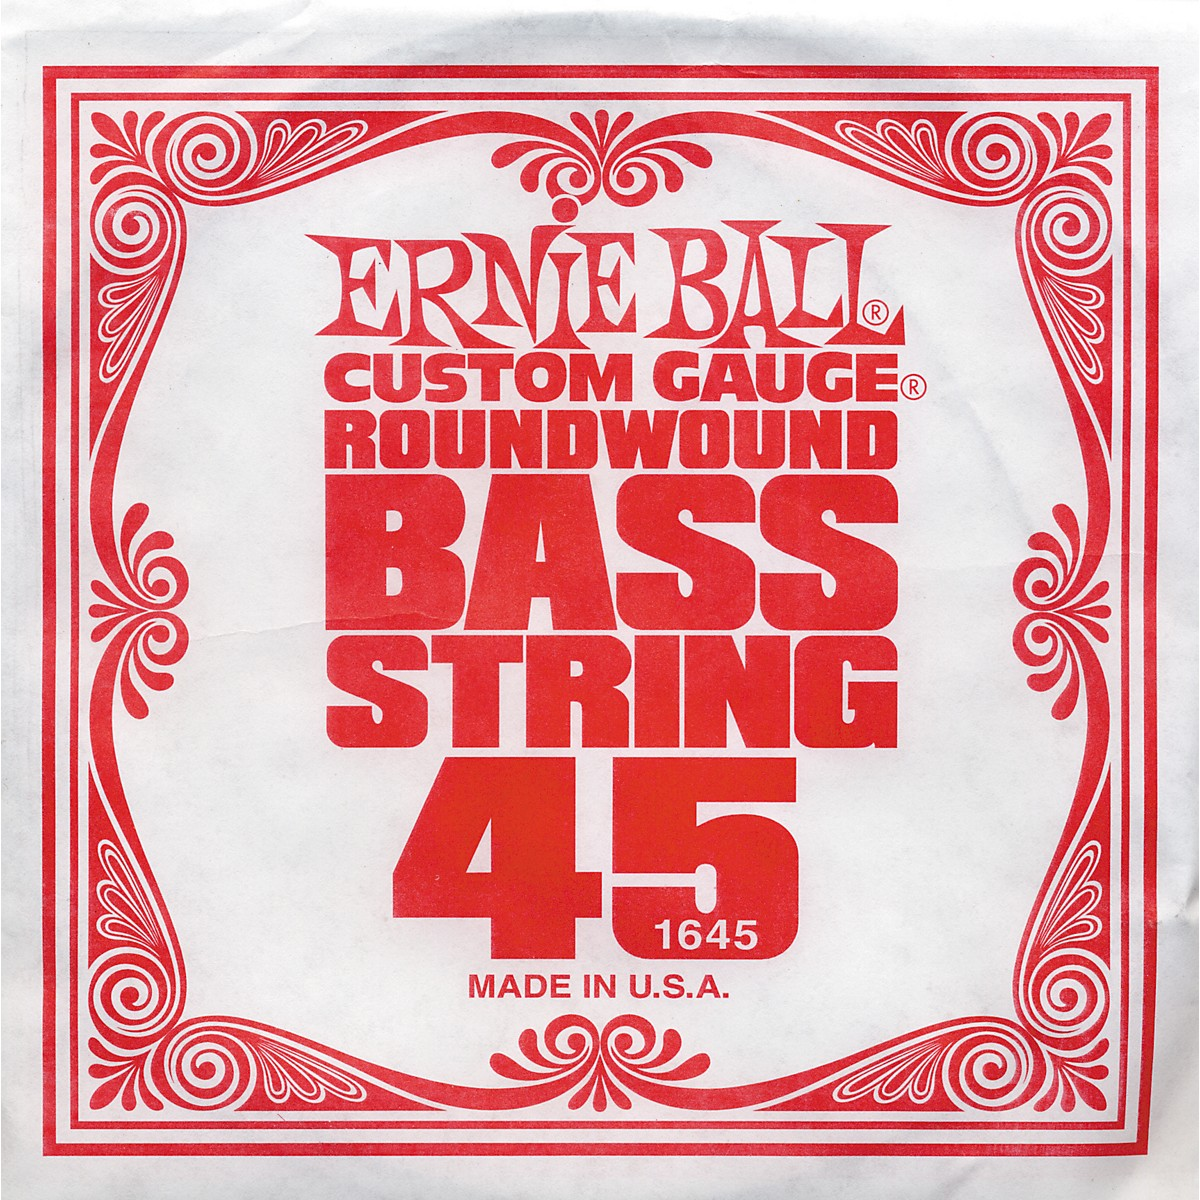 Ernie Ball 1645 Single Bass Guitar String